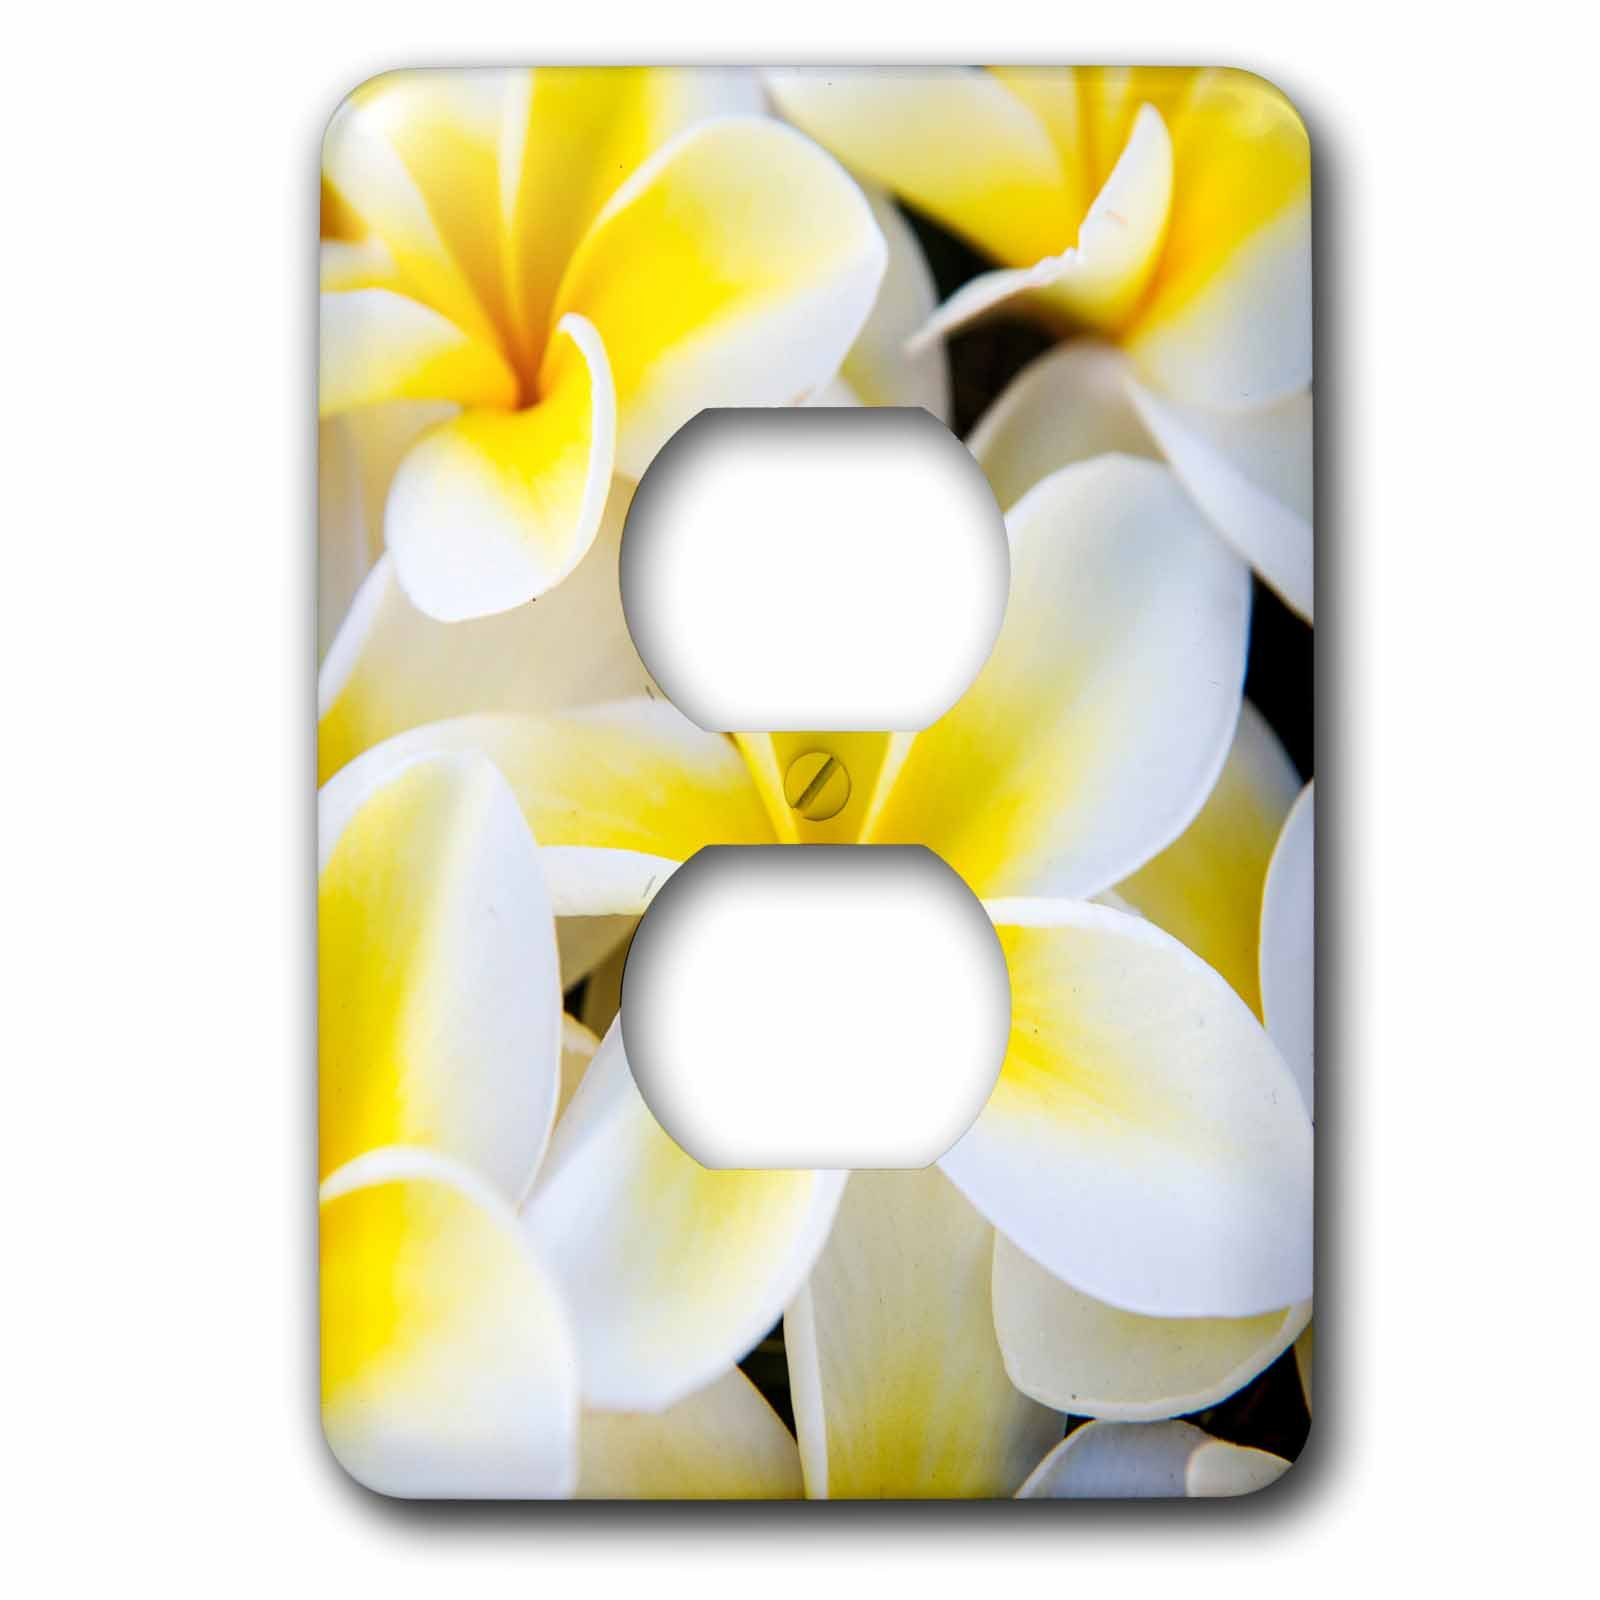 3dRose LSP_259246_6 USA, Hawaii, Maui, Close Up of Plumeria Flowers Plug Outlet Cover, Mixed